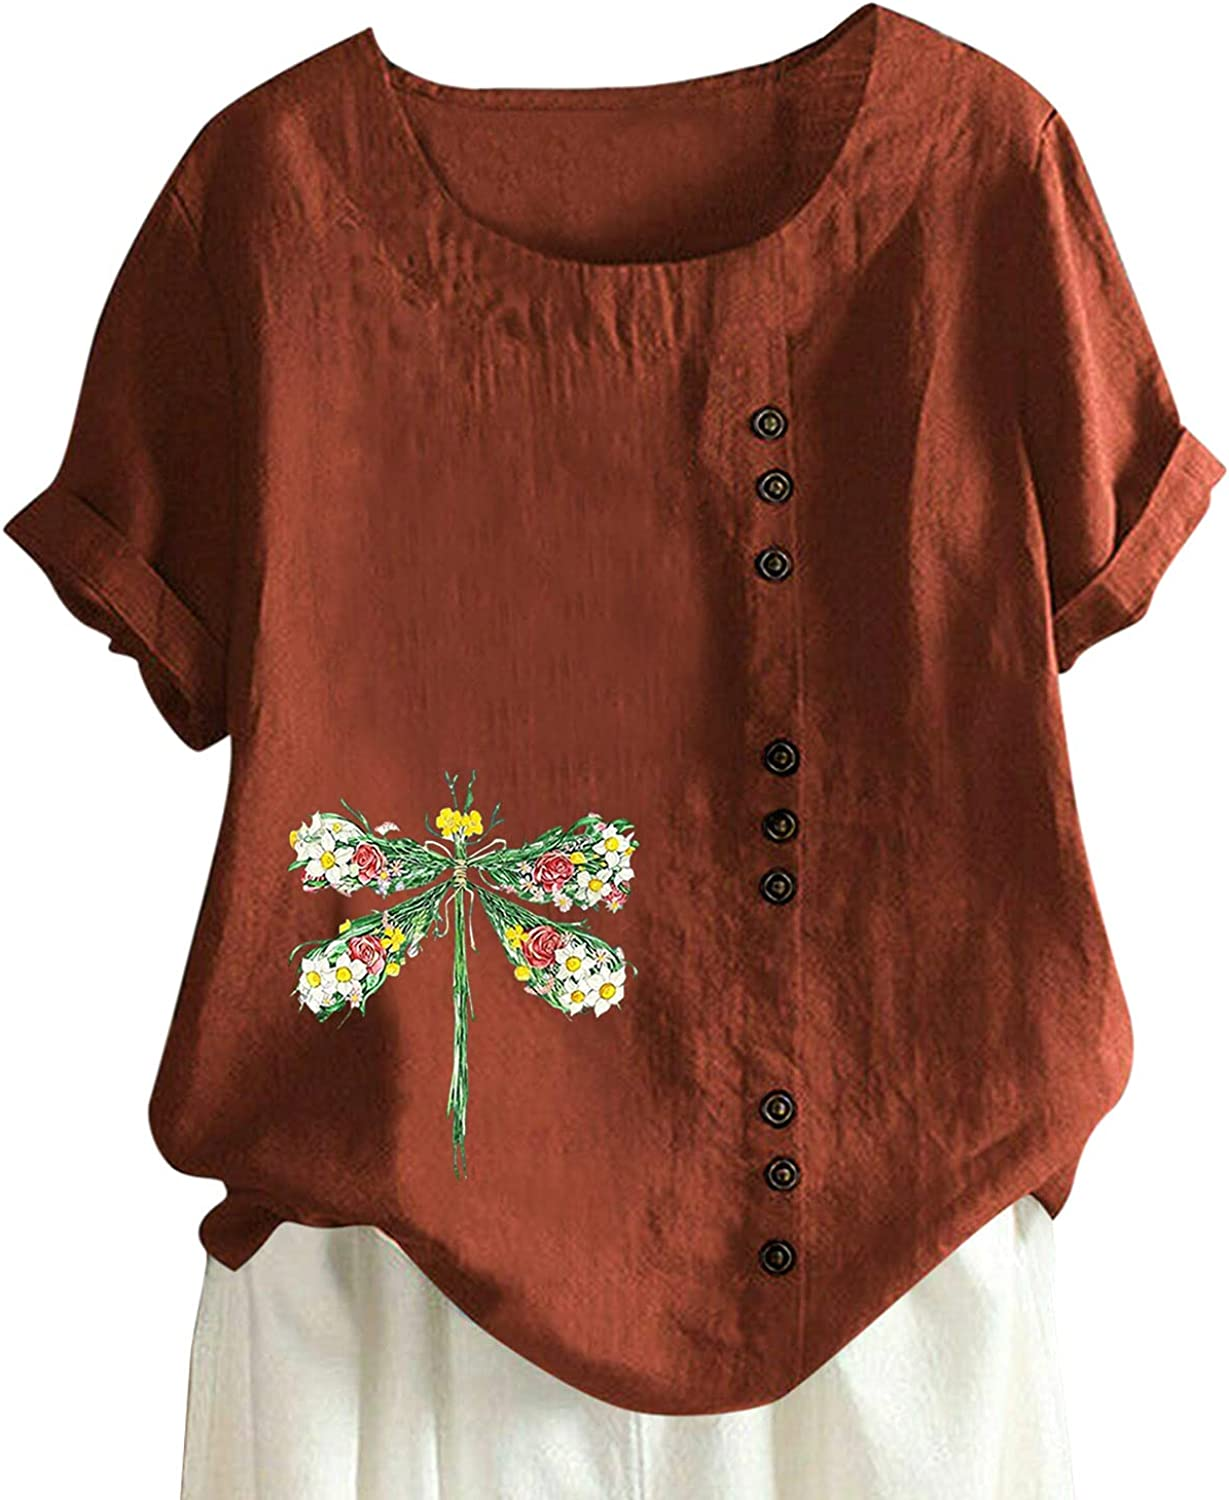 Womens Summer Tops Loose Fit Tees, Short Sleeves Cotton Linen Tunic Tops Floral Printed T Shirts Casual Blouses